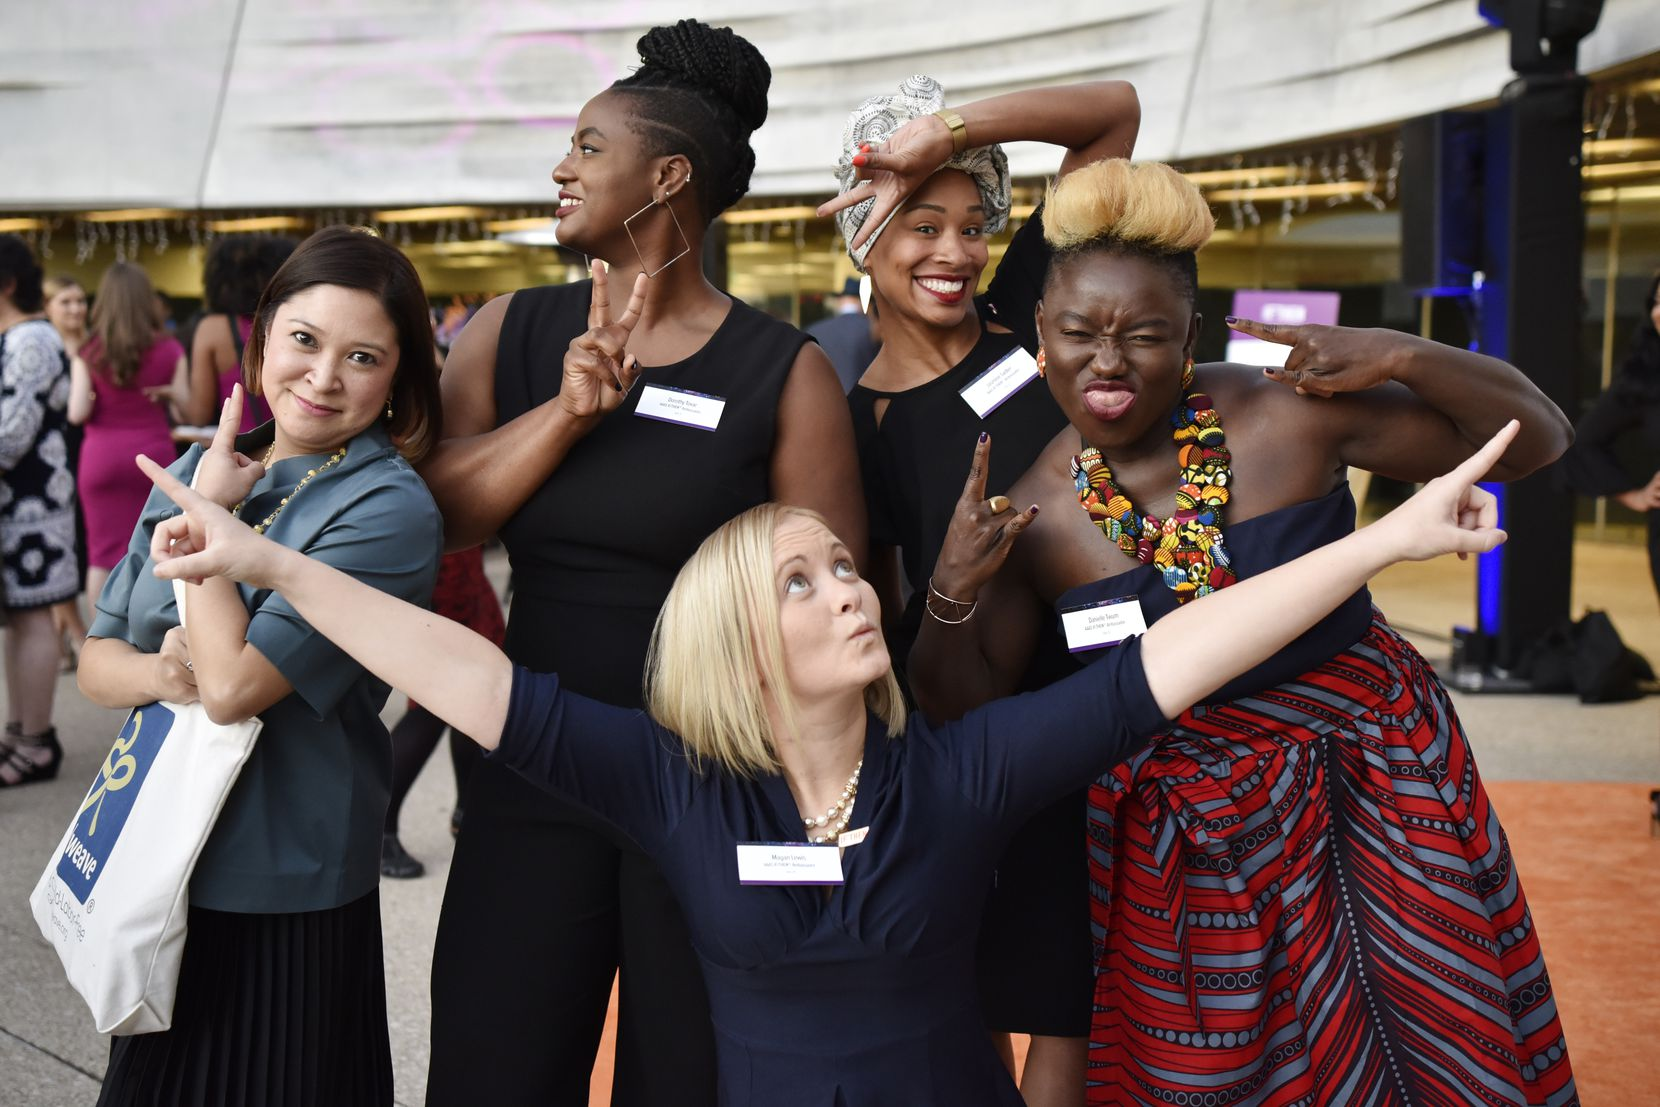 """IF/THEN Ambassadors (L-R) Charita Castro, Dorothy Tovar, Megan Lewis, Jasmine Sadler and Danielle Twum, far-right, strike their best yet funniest pose during a red carpet event for the IF/THEN Ambassador Summit """"An Evening of Science and Storytelling,"""" at the Perot Museum."""